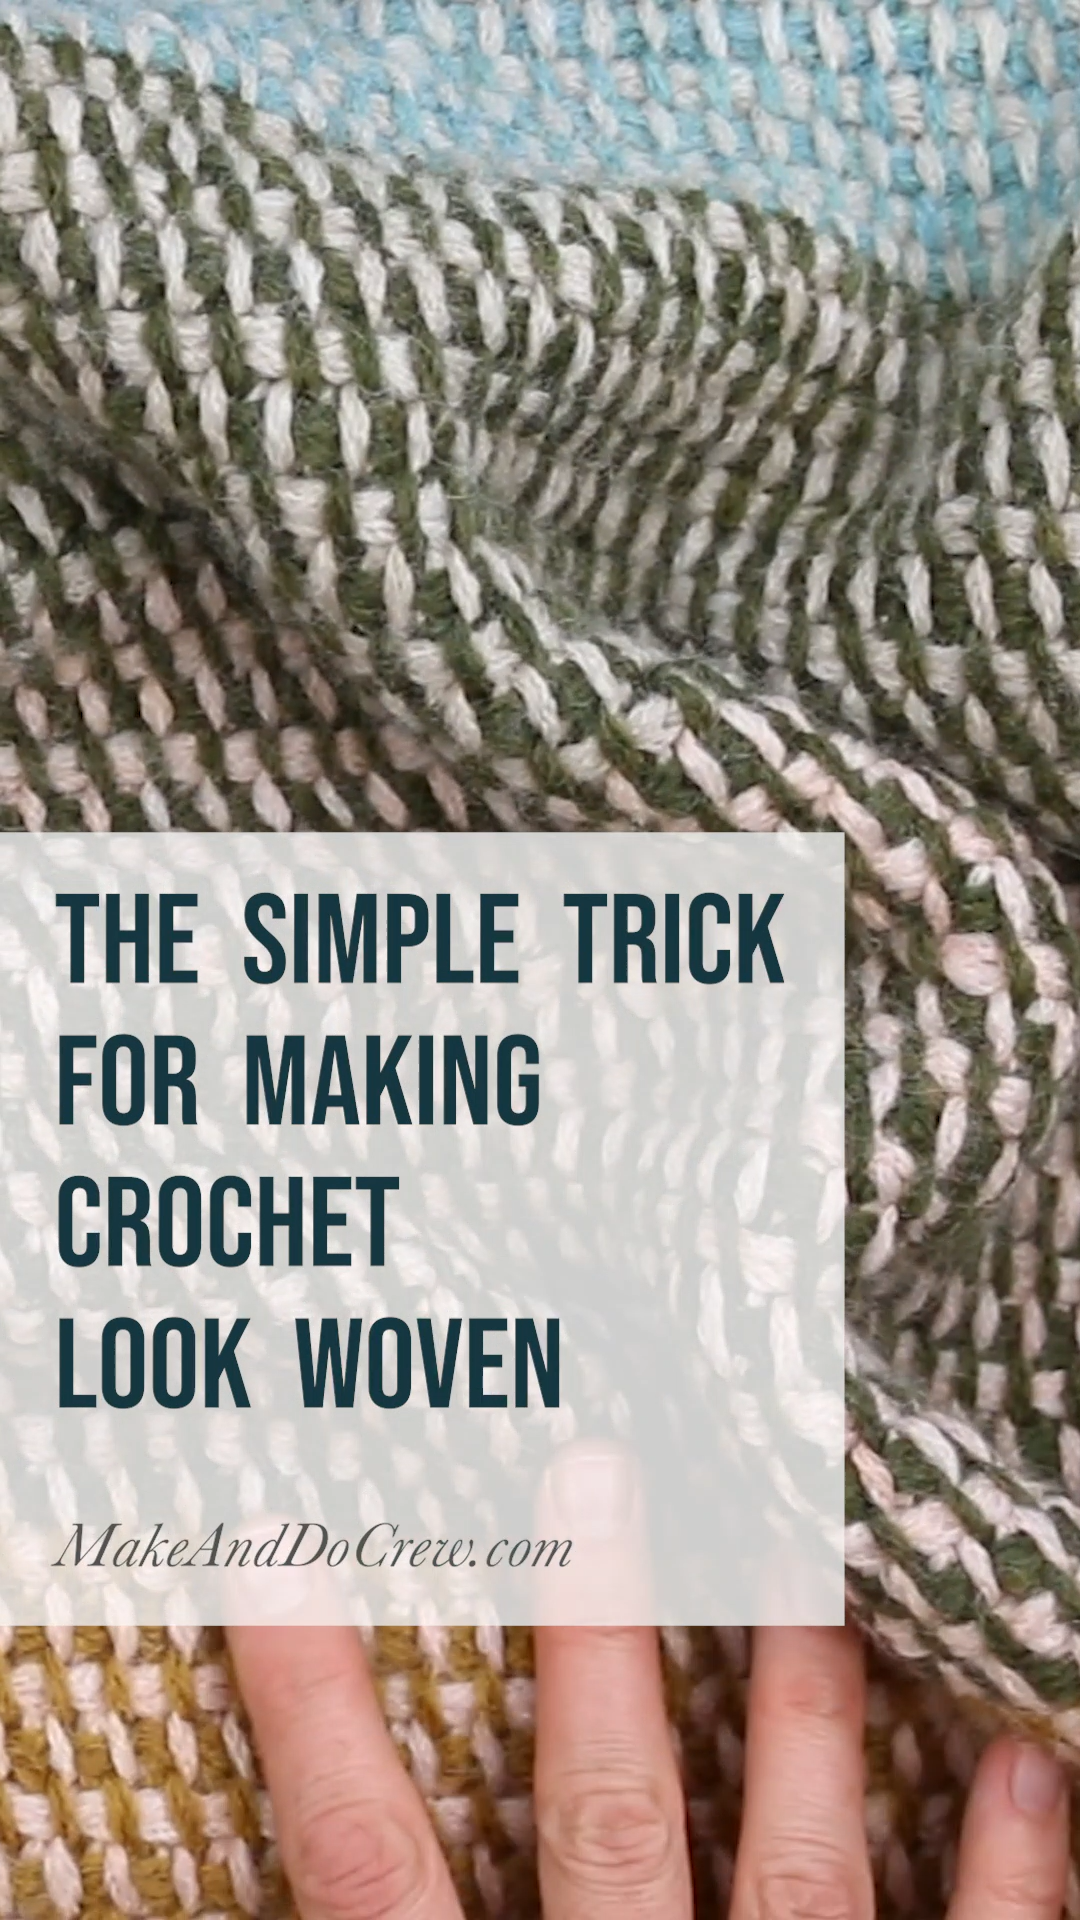 Learn How to Make Tunisian Crochet Look Woven - Free Video Tutorial